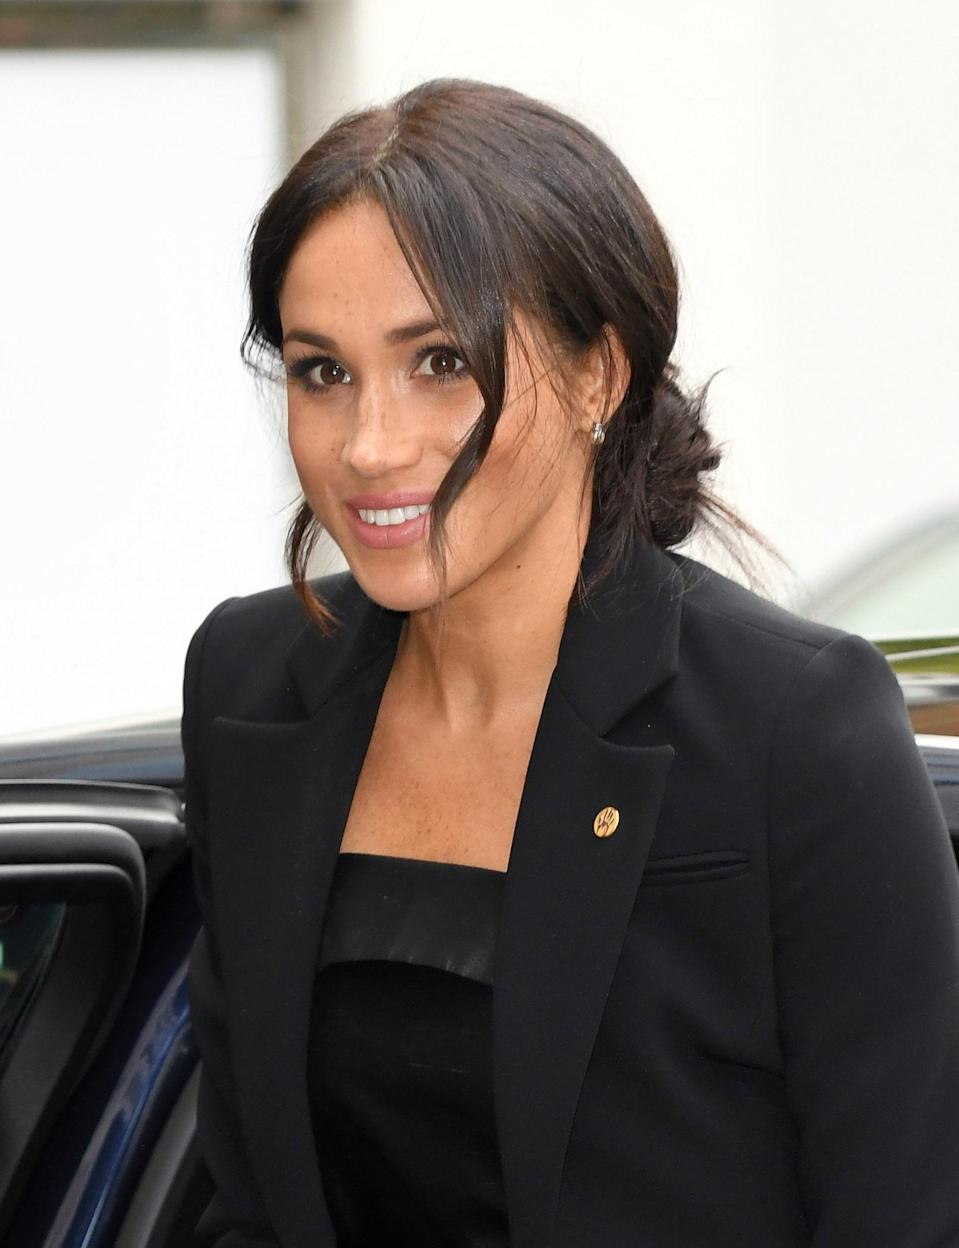 Meghan Markle belonged to the Kappa Kappa Gamma sorority at Northwestern University during 2000-2003. A chapter of the sorority in New Mexico is being investigated for alleged racist remarks by some members. (Photo: Getty Images)